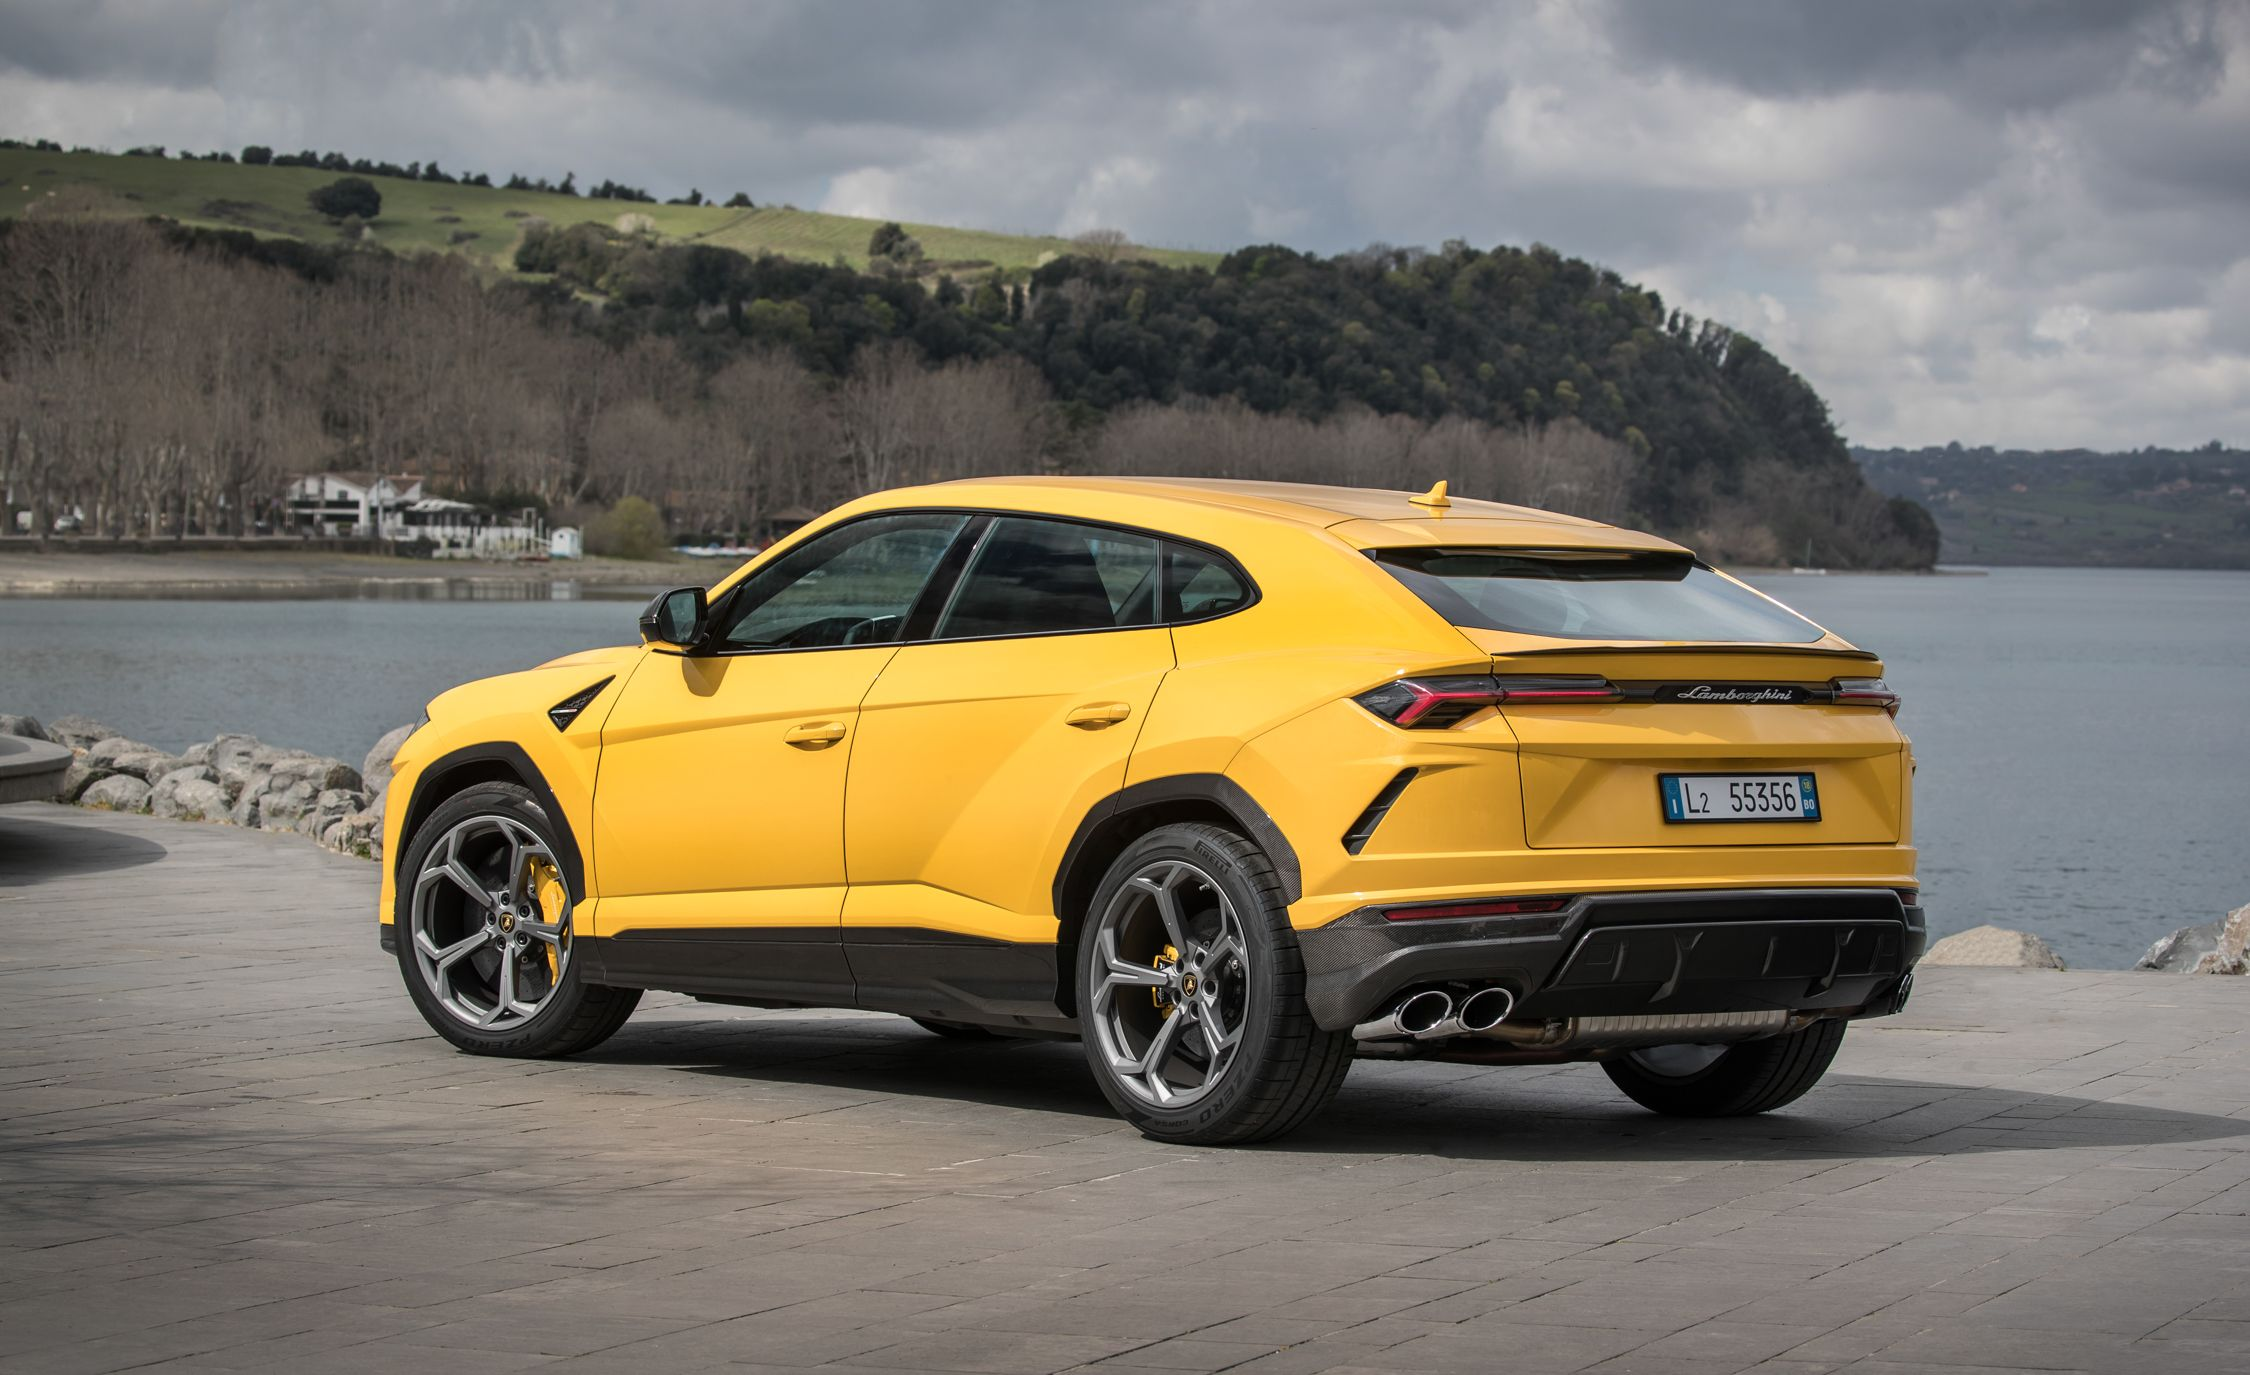 Lamborghini Urus Reviews | Lamborghini Urus Price, Photos, And Specs | Car  And Driver